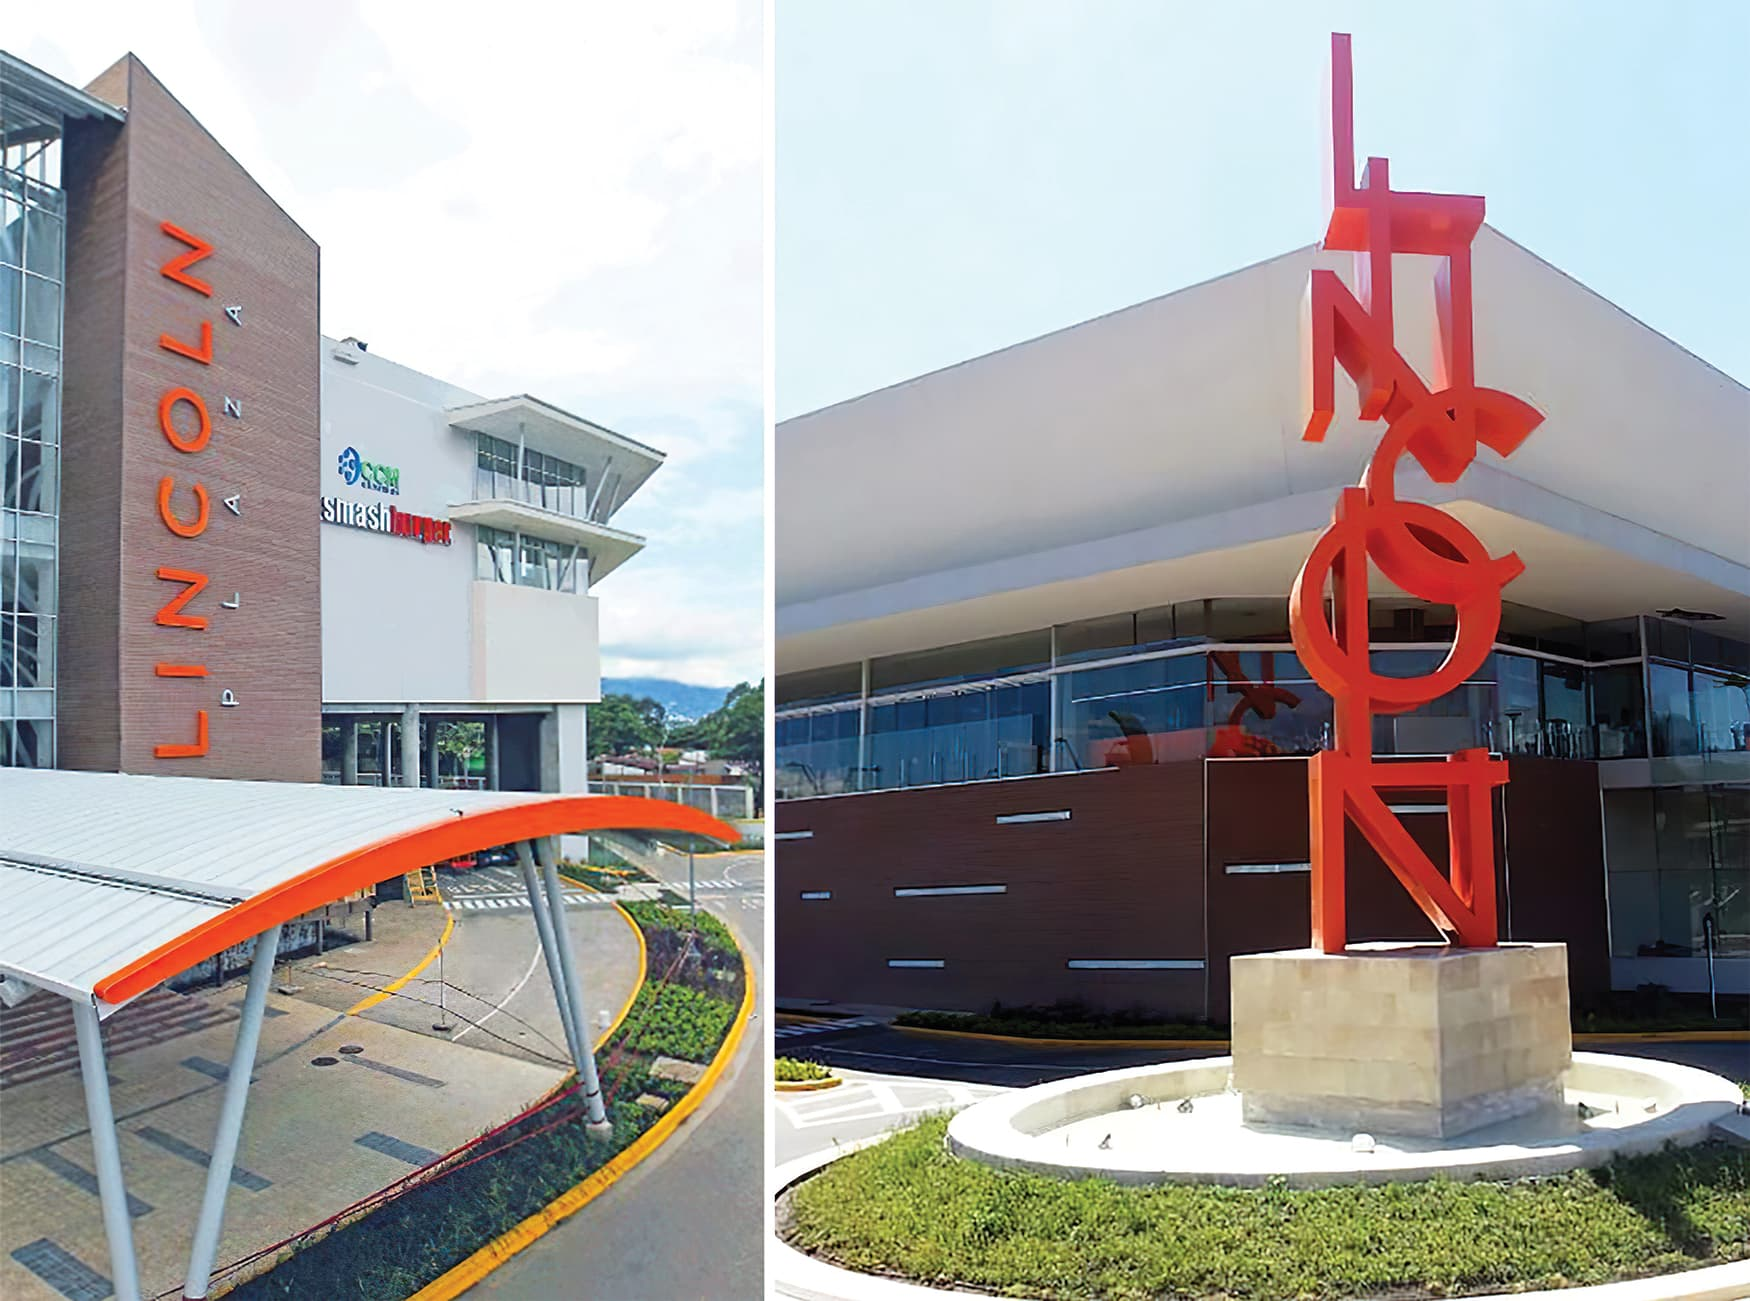 Lincoln Plaza, a retail destination in located in San Jose, Costa Rica. RSM Design brought environmental graphic design and architectural graphic design. Monument Signage. Project Identity.